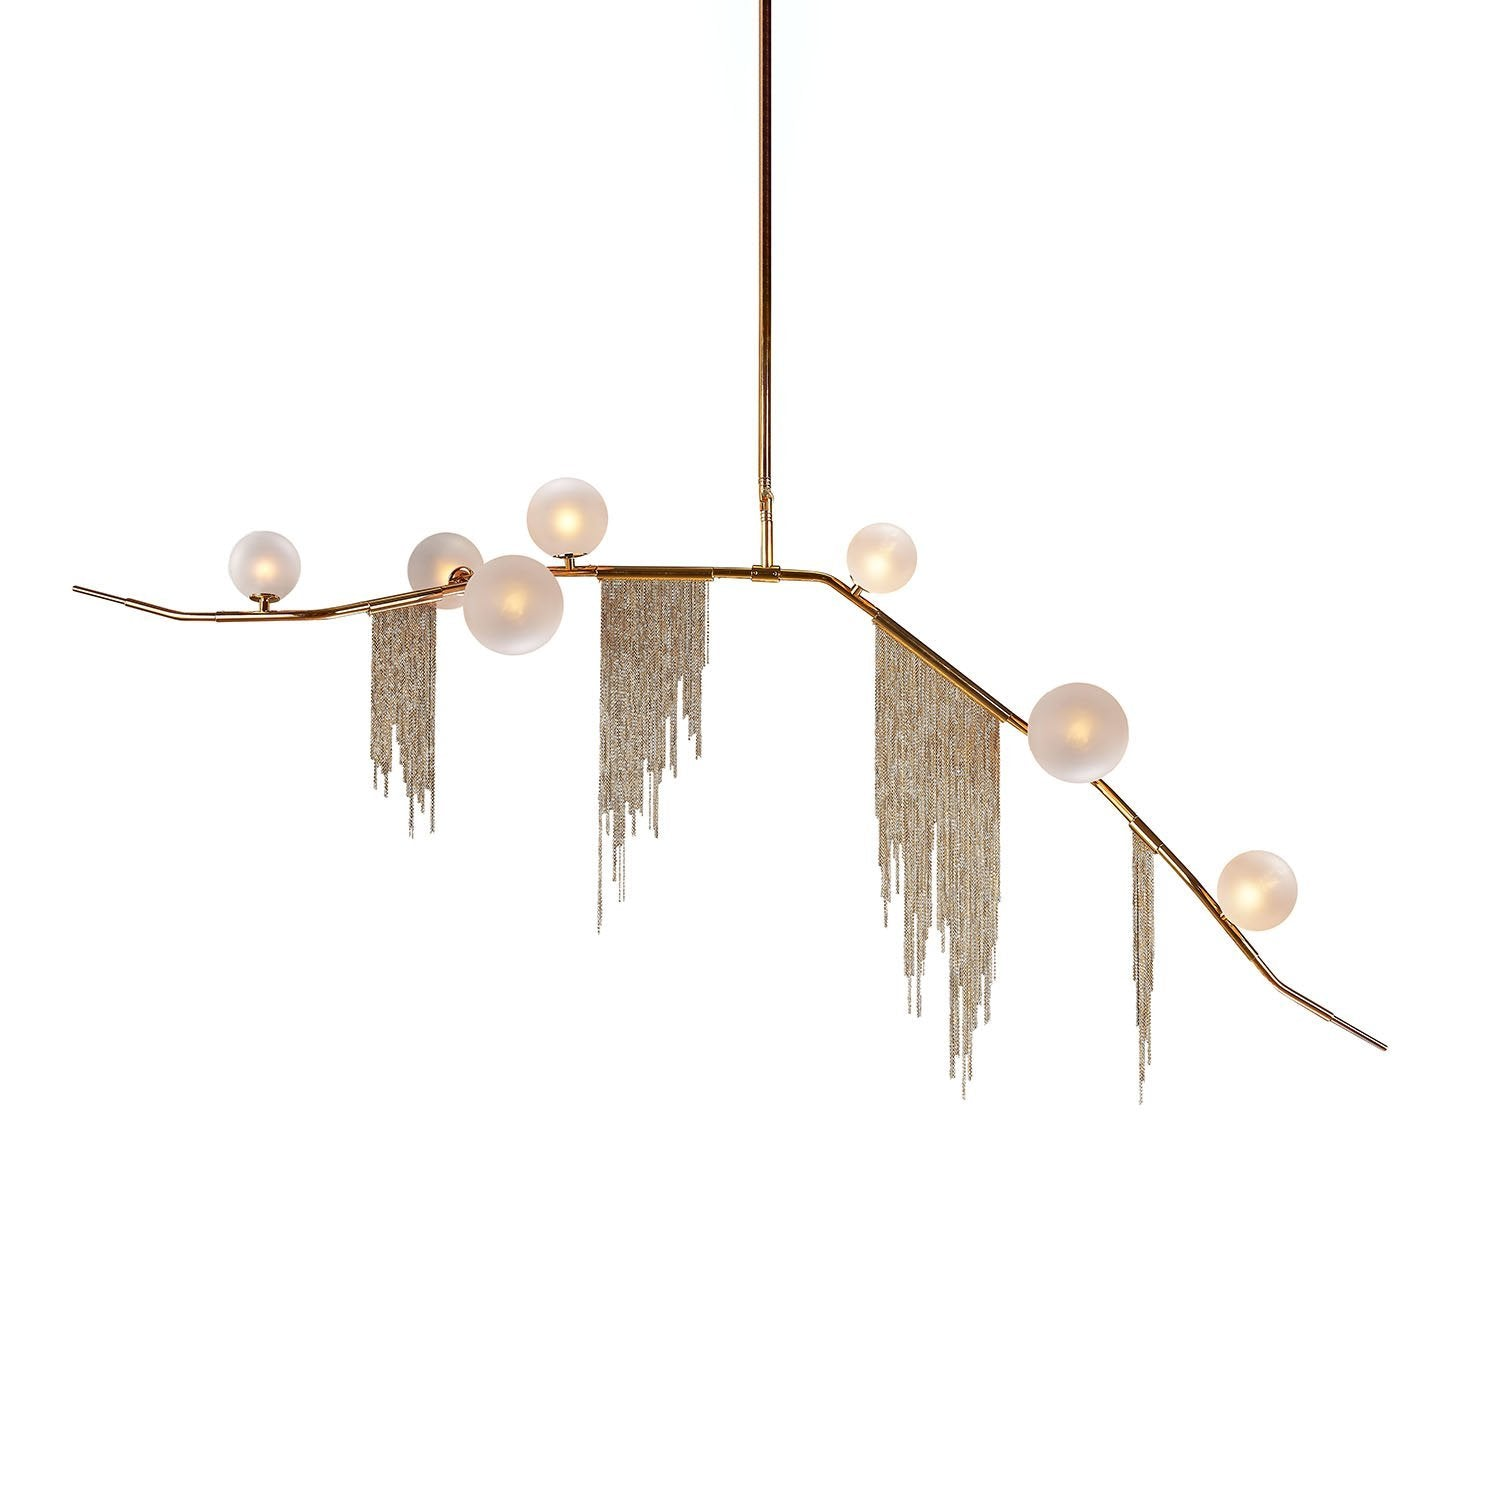 [LS1255S7] Kerseboom Fringe Chandelier - medium [New]